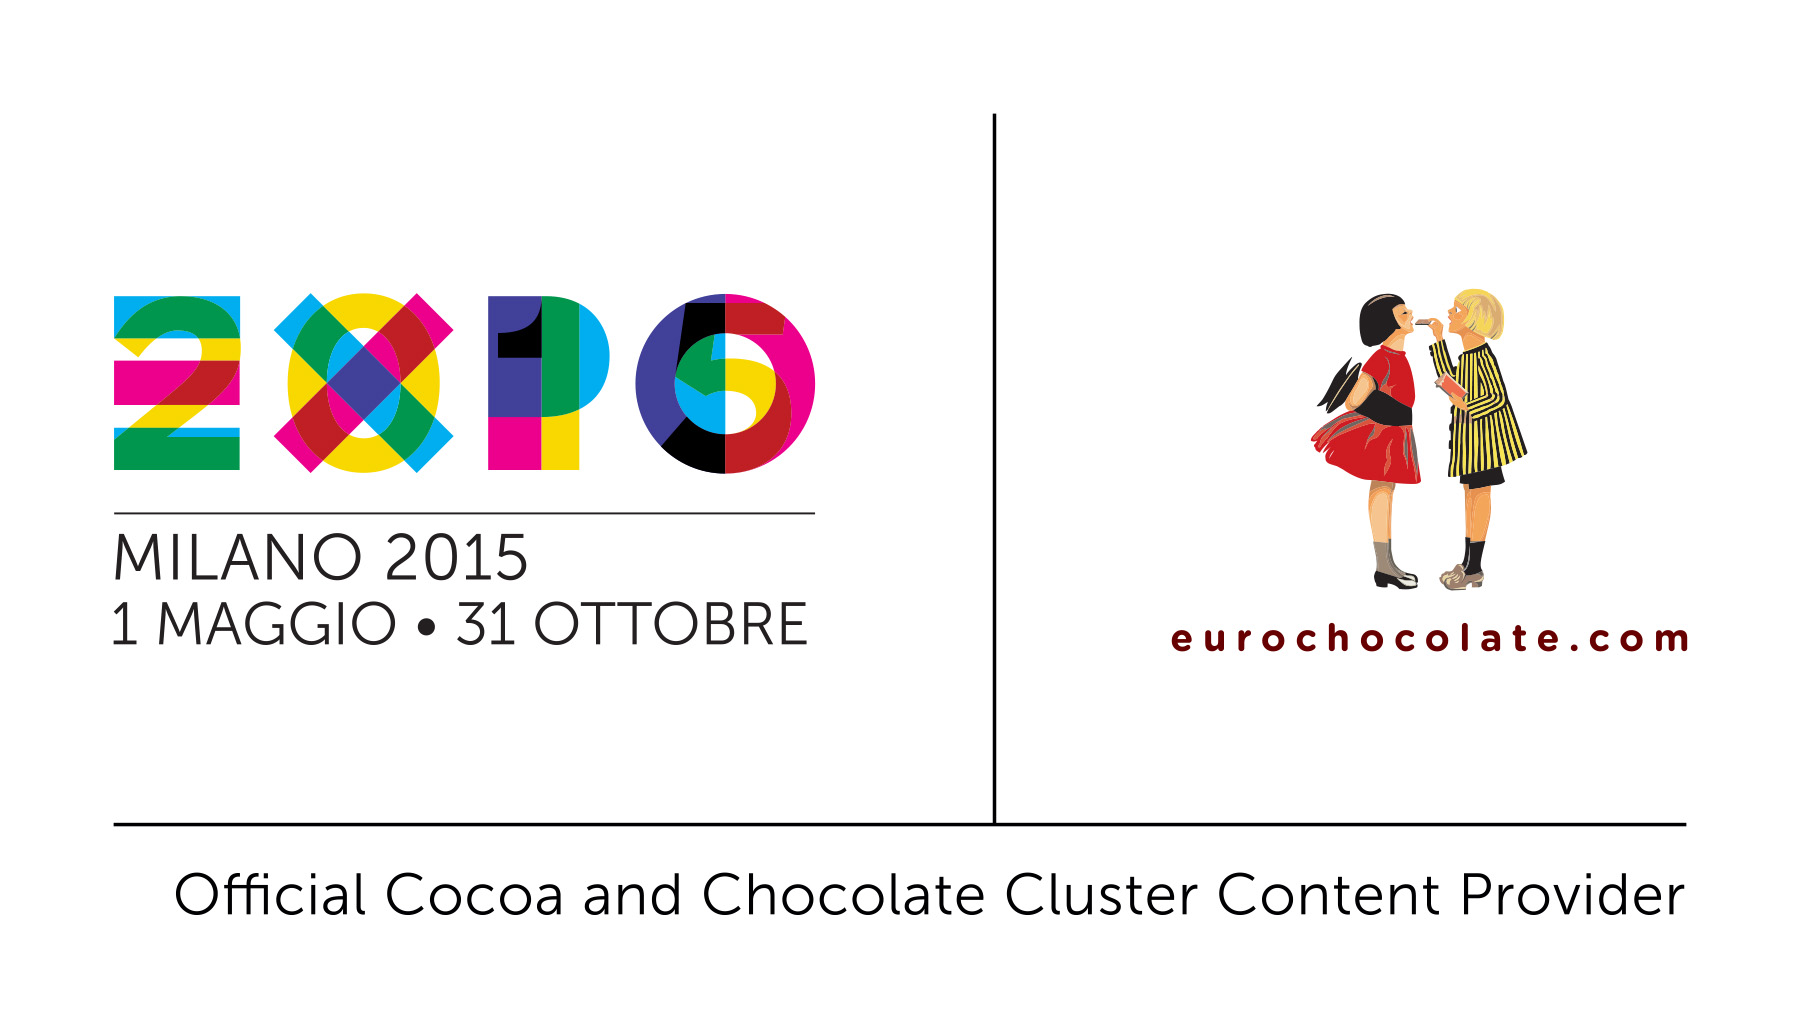 expo-eurochocolate